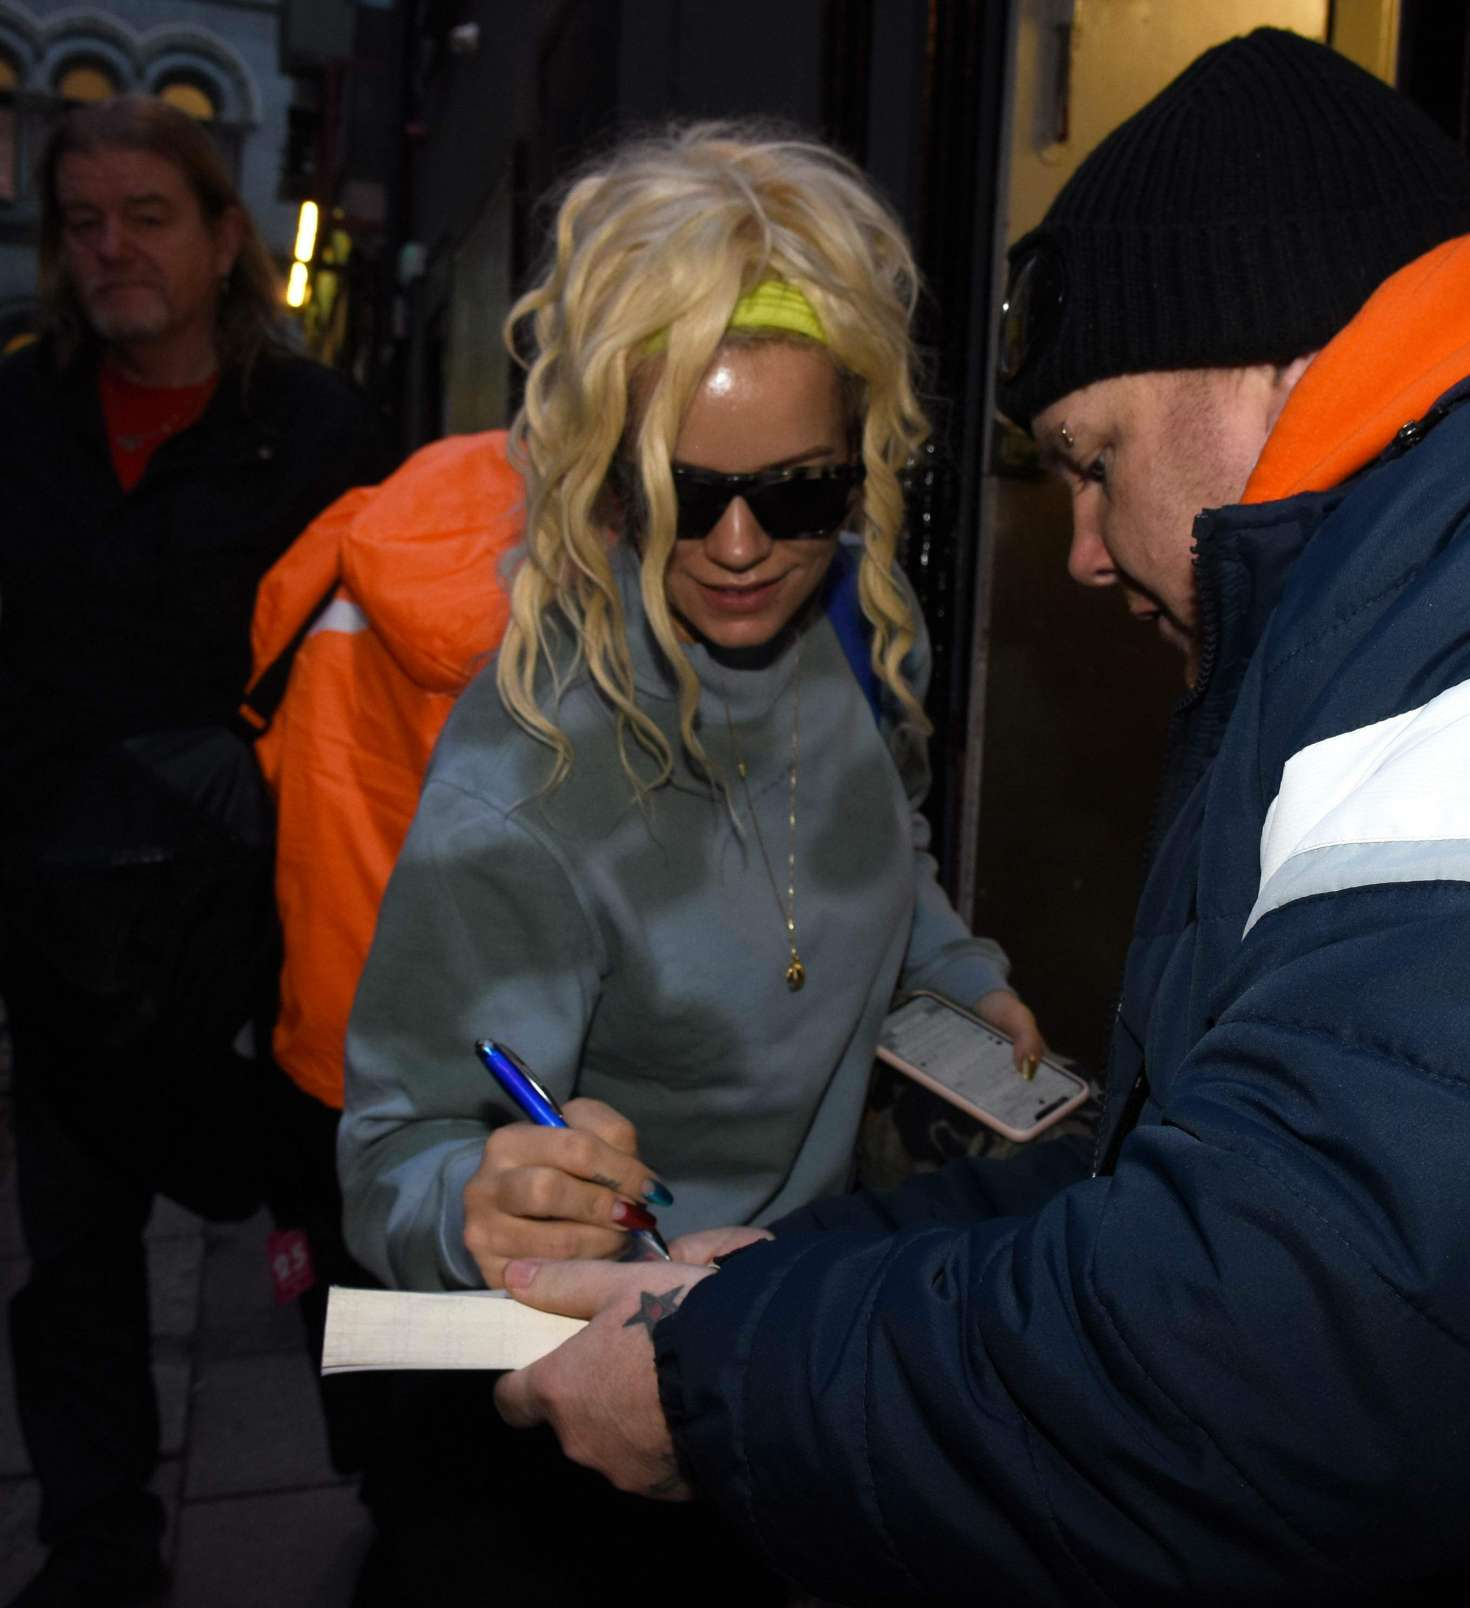 Lily Allen 2018 : Lily Allen: Arriving at The Stage Door of The Olympia Theatre -02